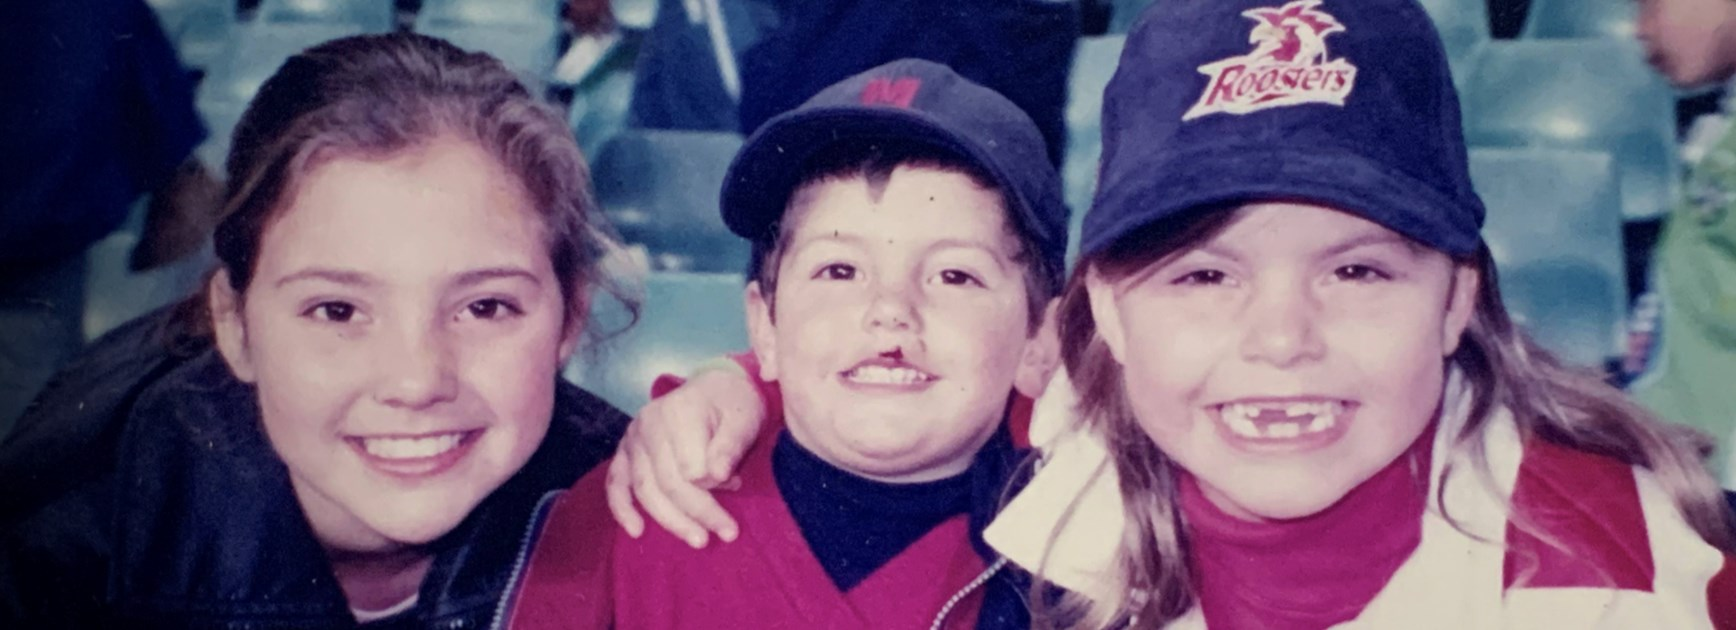 Rooster Since the Start: A young Jess Sergis (far right) at a Roosters game with her siblings.